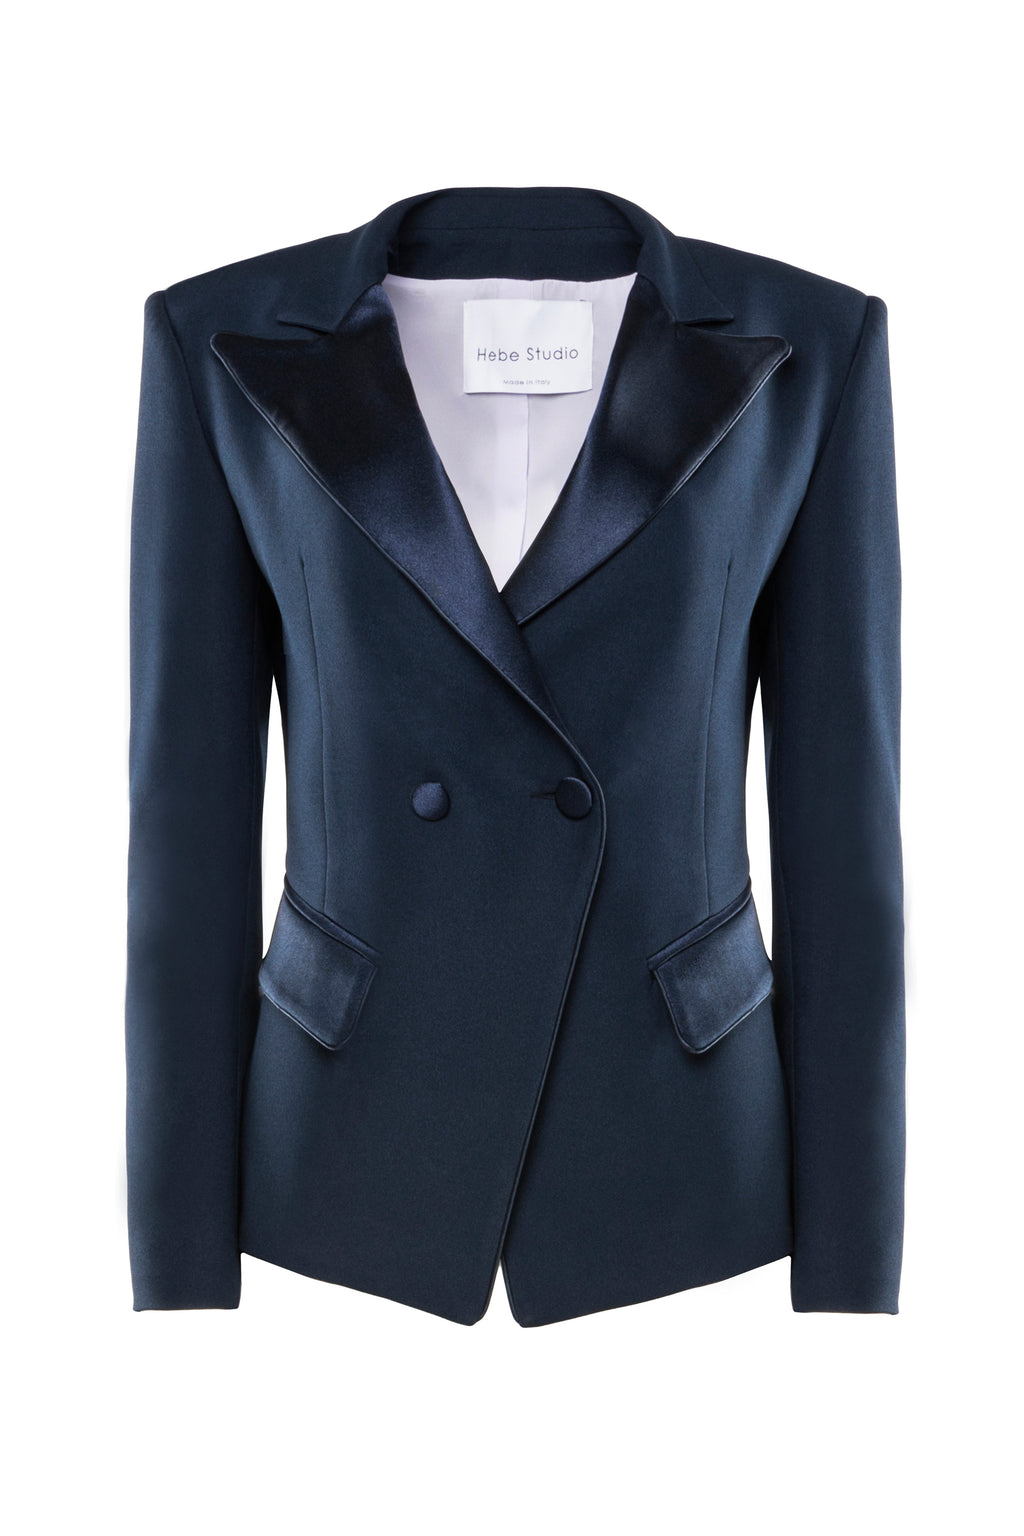 The Navy LouLou Blazer